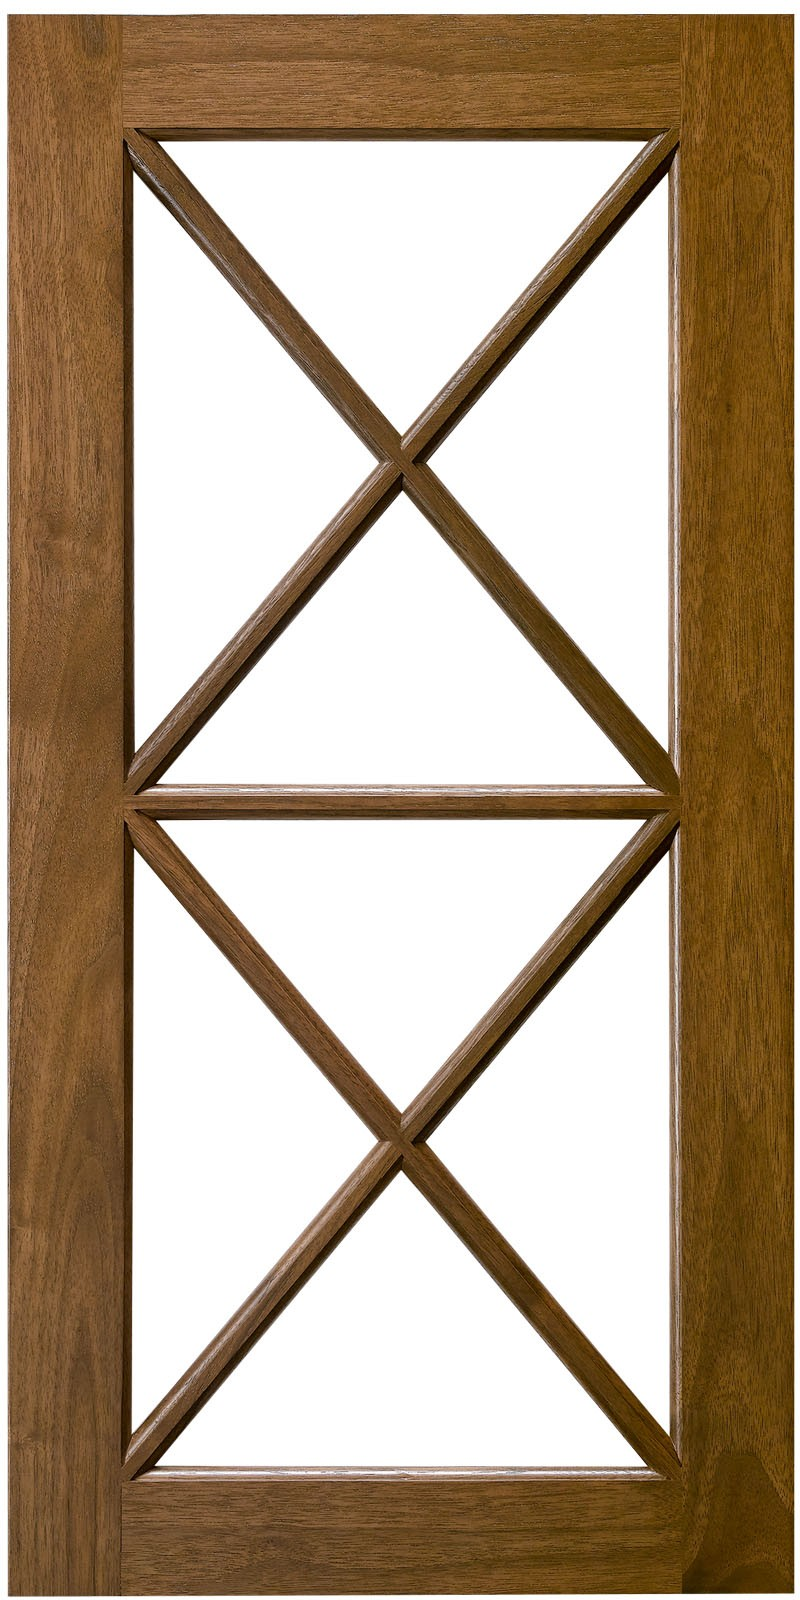 Double X Horizontal Mullion Cabinet Door